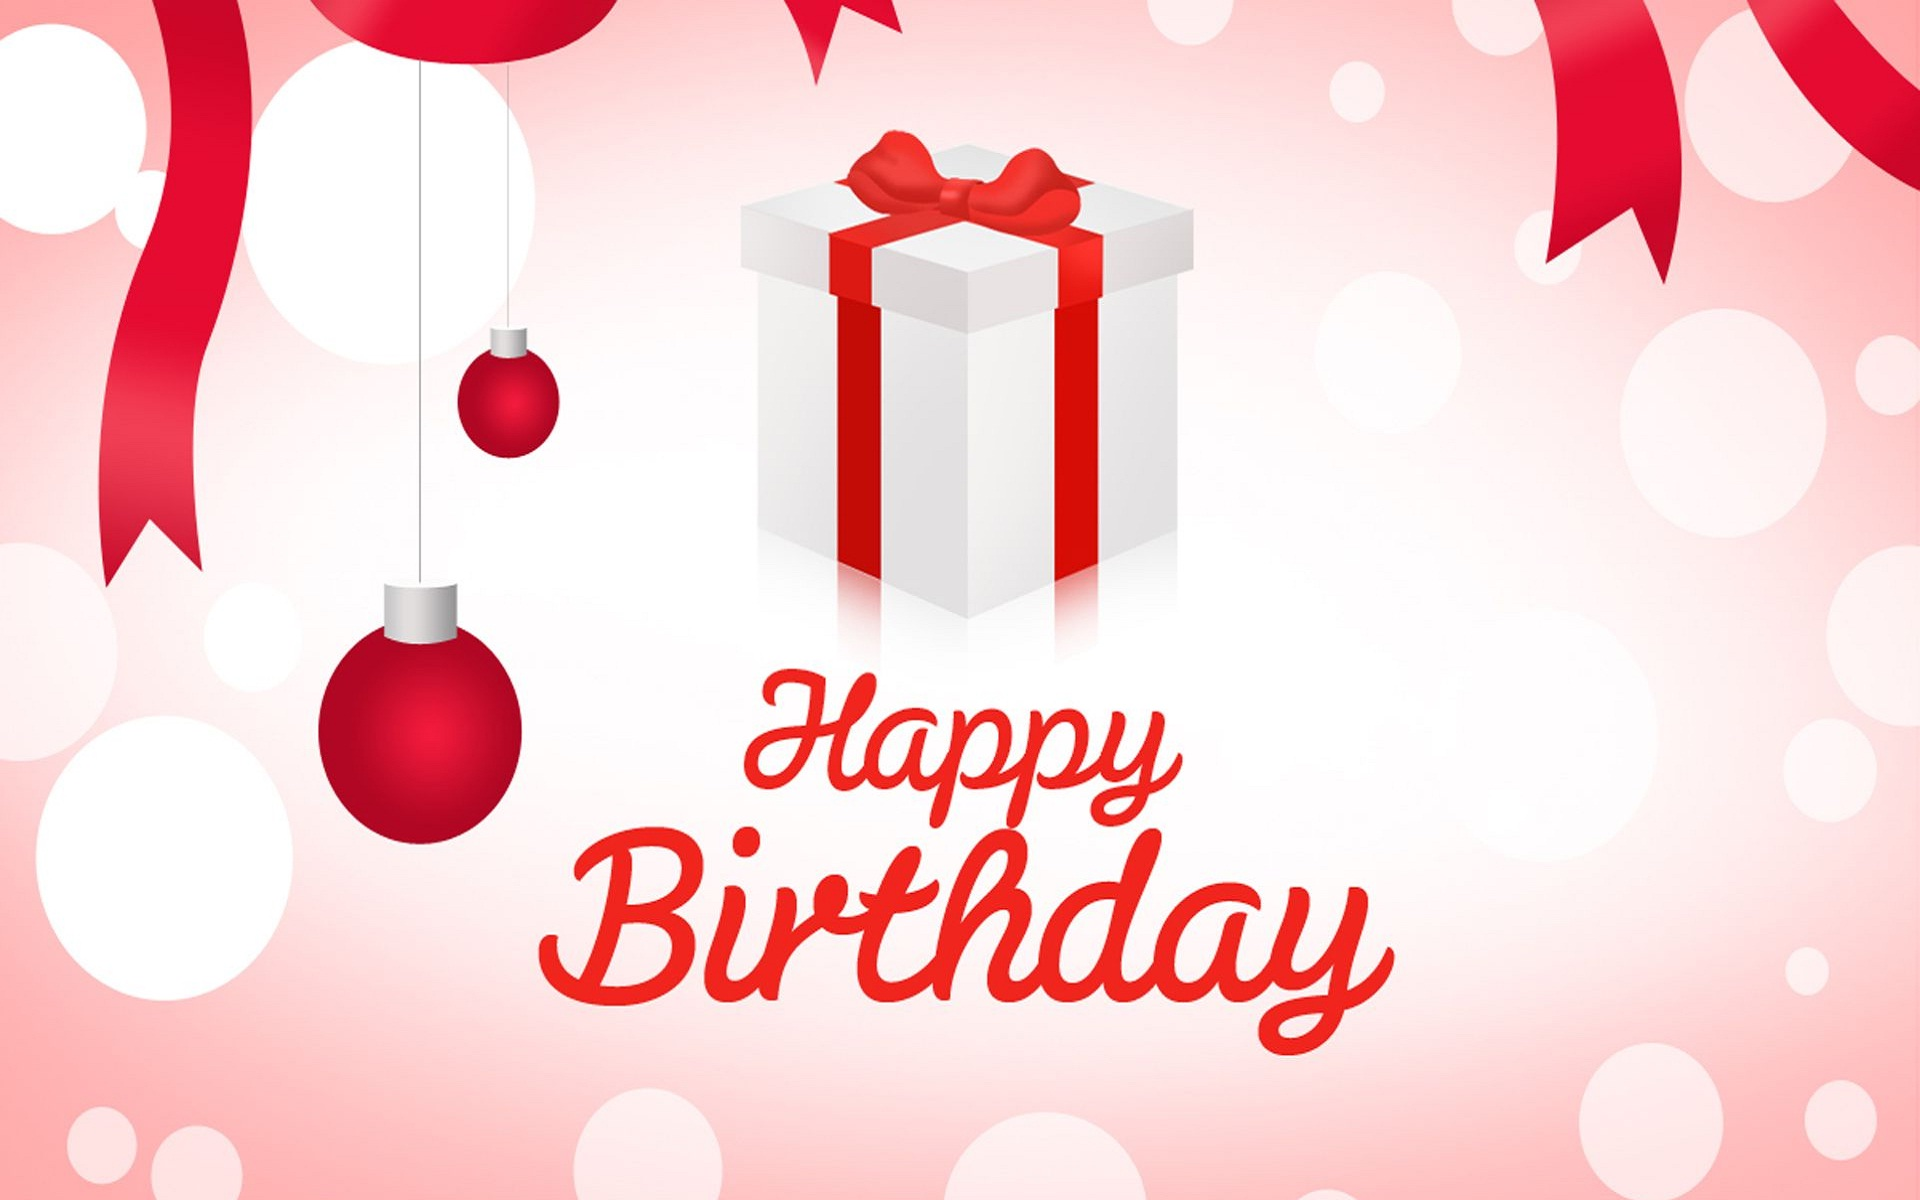 hd wallpaper happy birthday gifts ; Happy-Birthday-Festivity